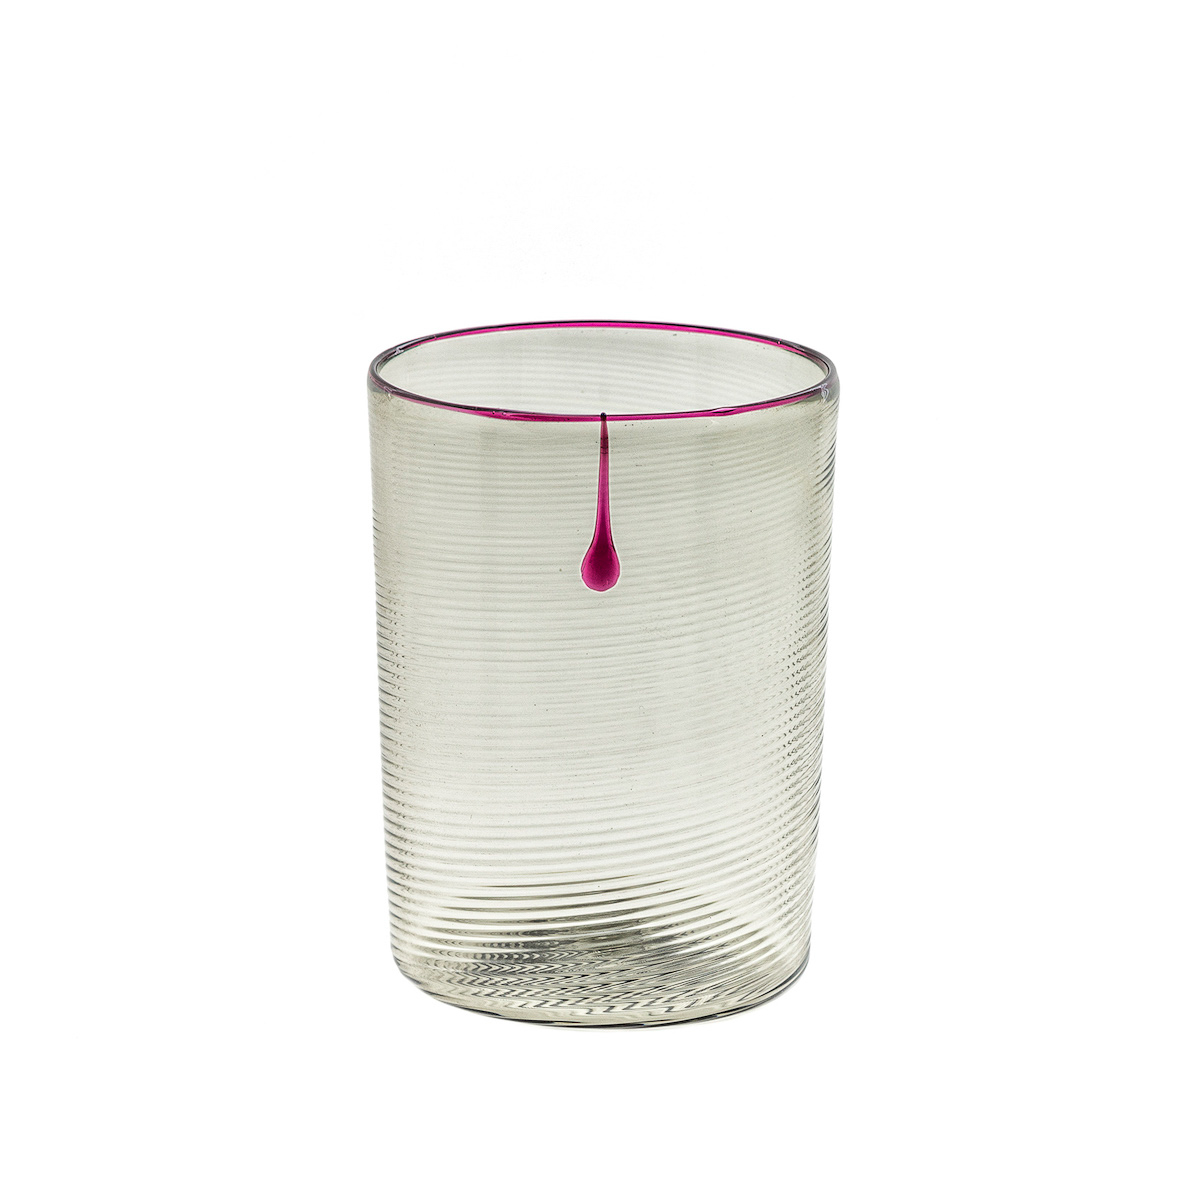 noemi-tear-glass-riga-mena-murano-design-giberto-water